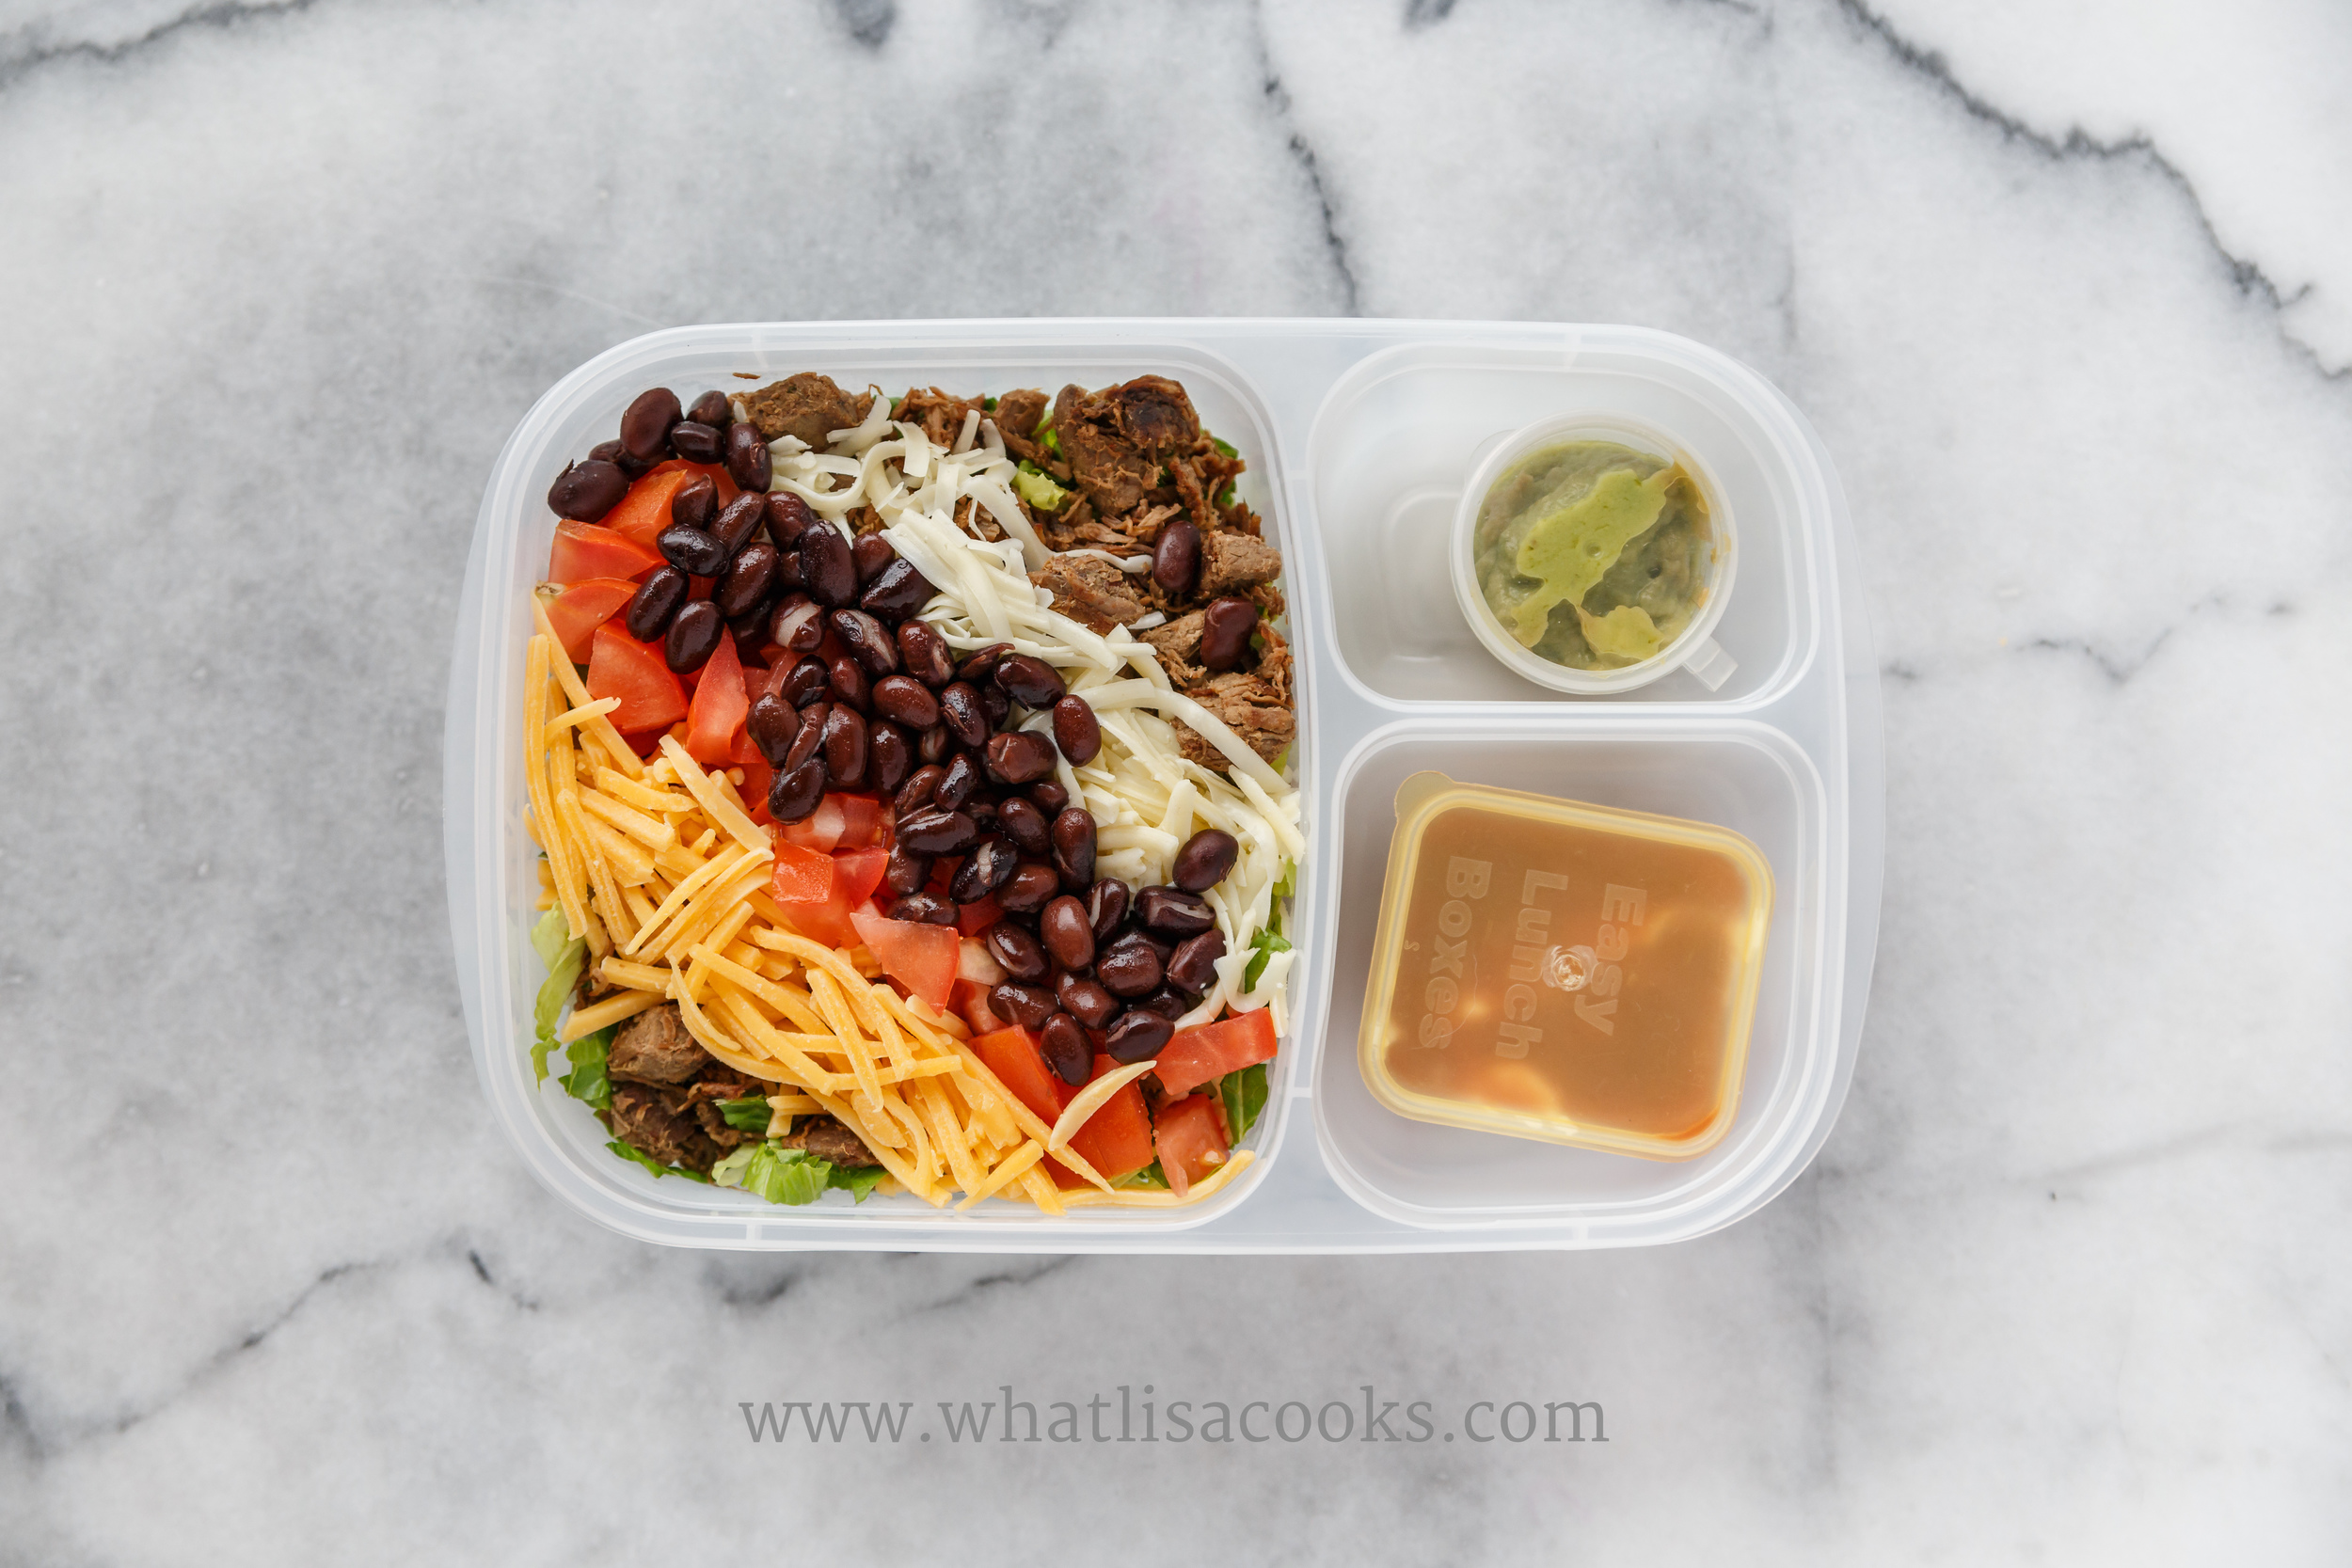 Taco salad made from dinner leftovers: lettuce, shredded beef, black beans, cheddar cheese, jack cheese, tomatoes. On the side there is one container of sour cream + salsa, and one of guacamole, to be mixed in to the salad for dressing.